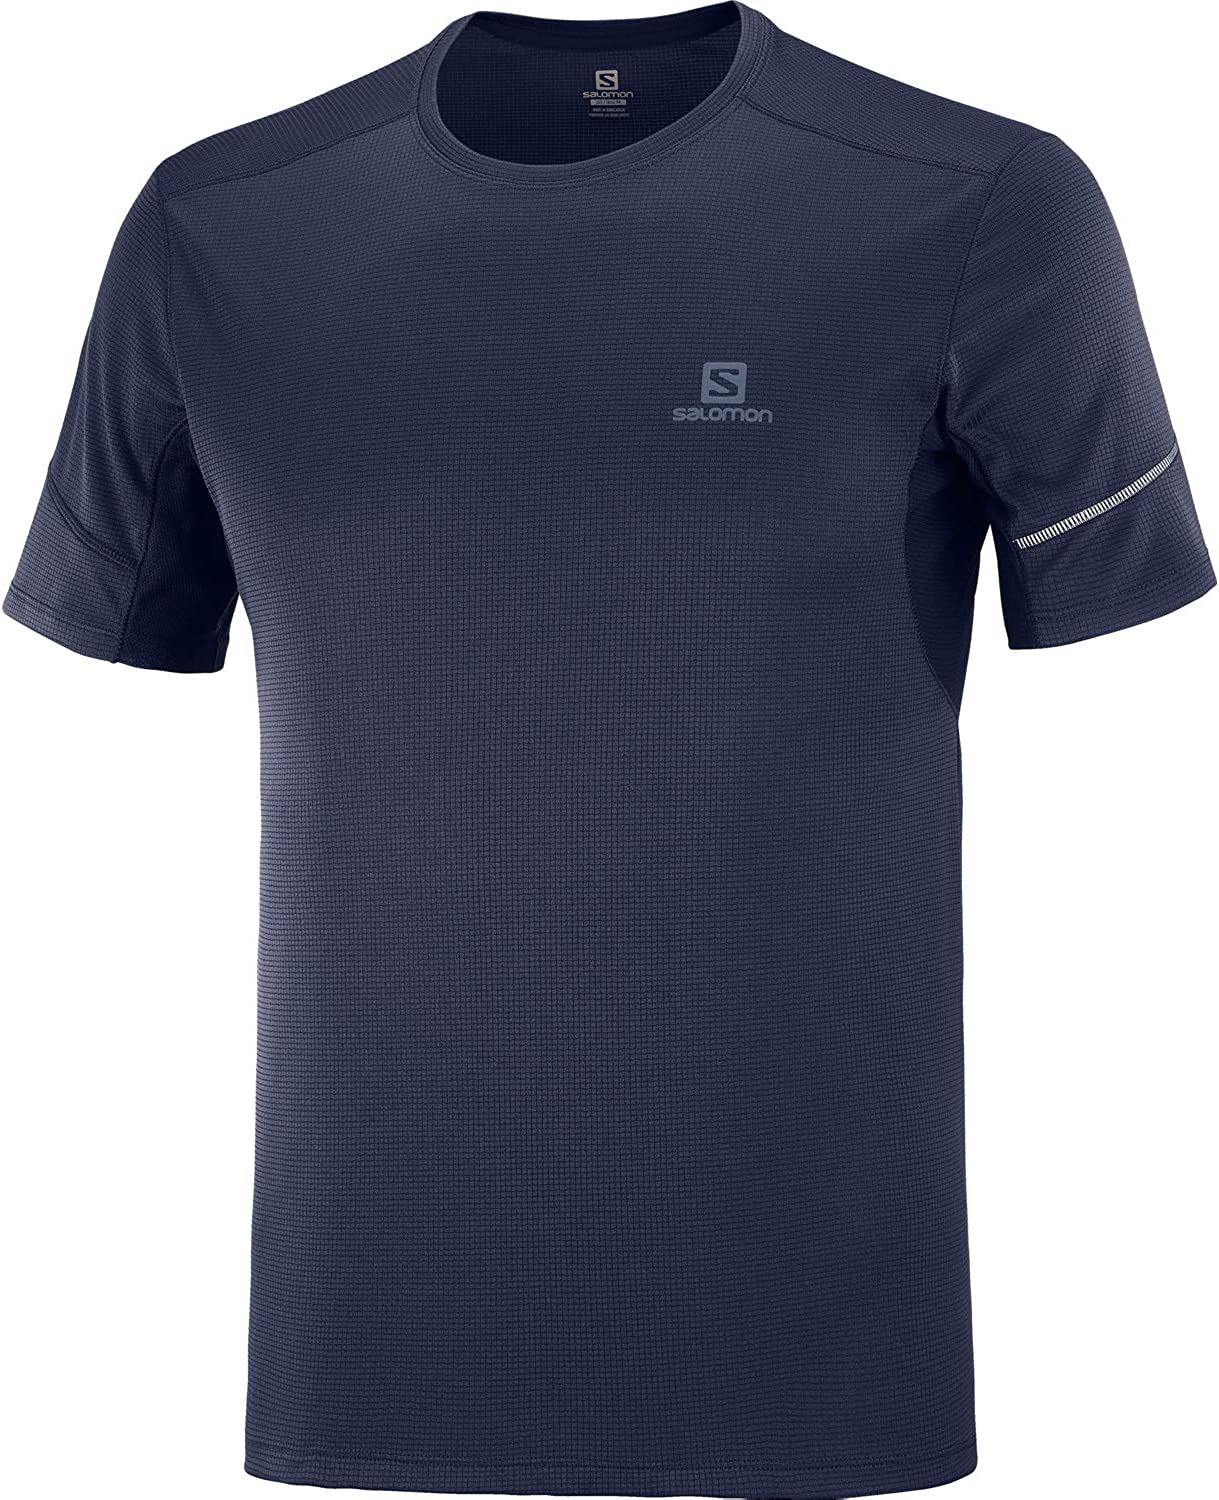 Salomon Men's T-Shirt Short Sleeve 67% OFF of Our shop most popular fixed price